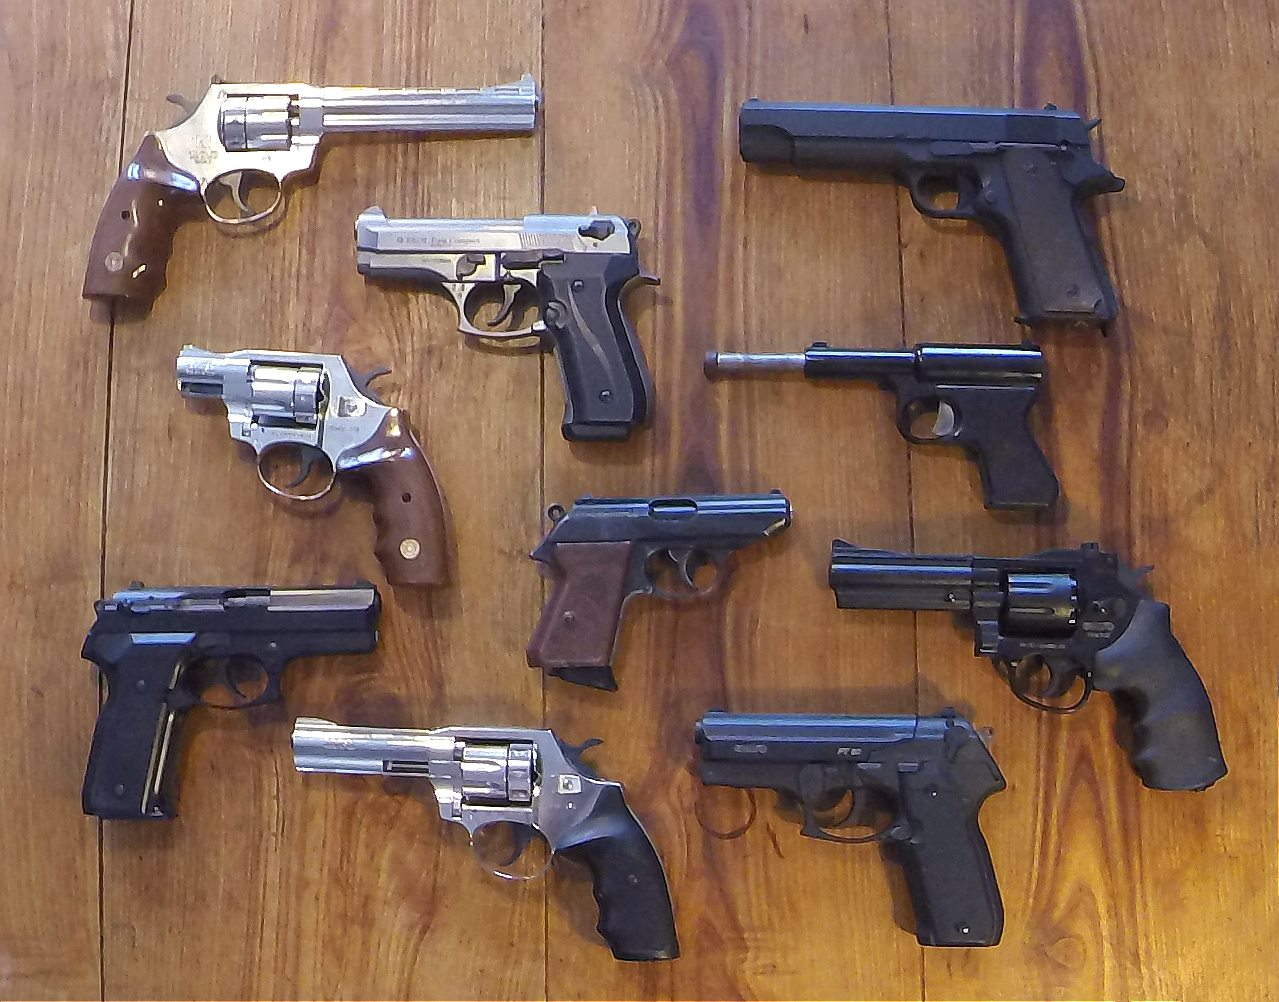 A Thorough Guide to All Common Gun Types